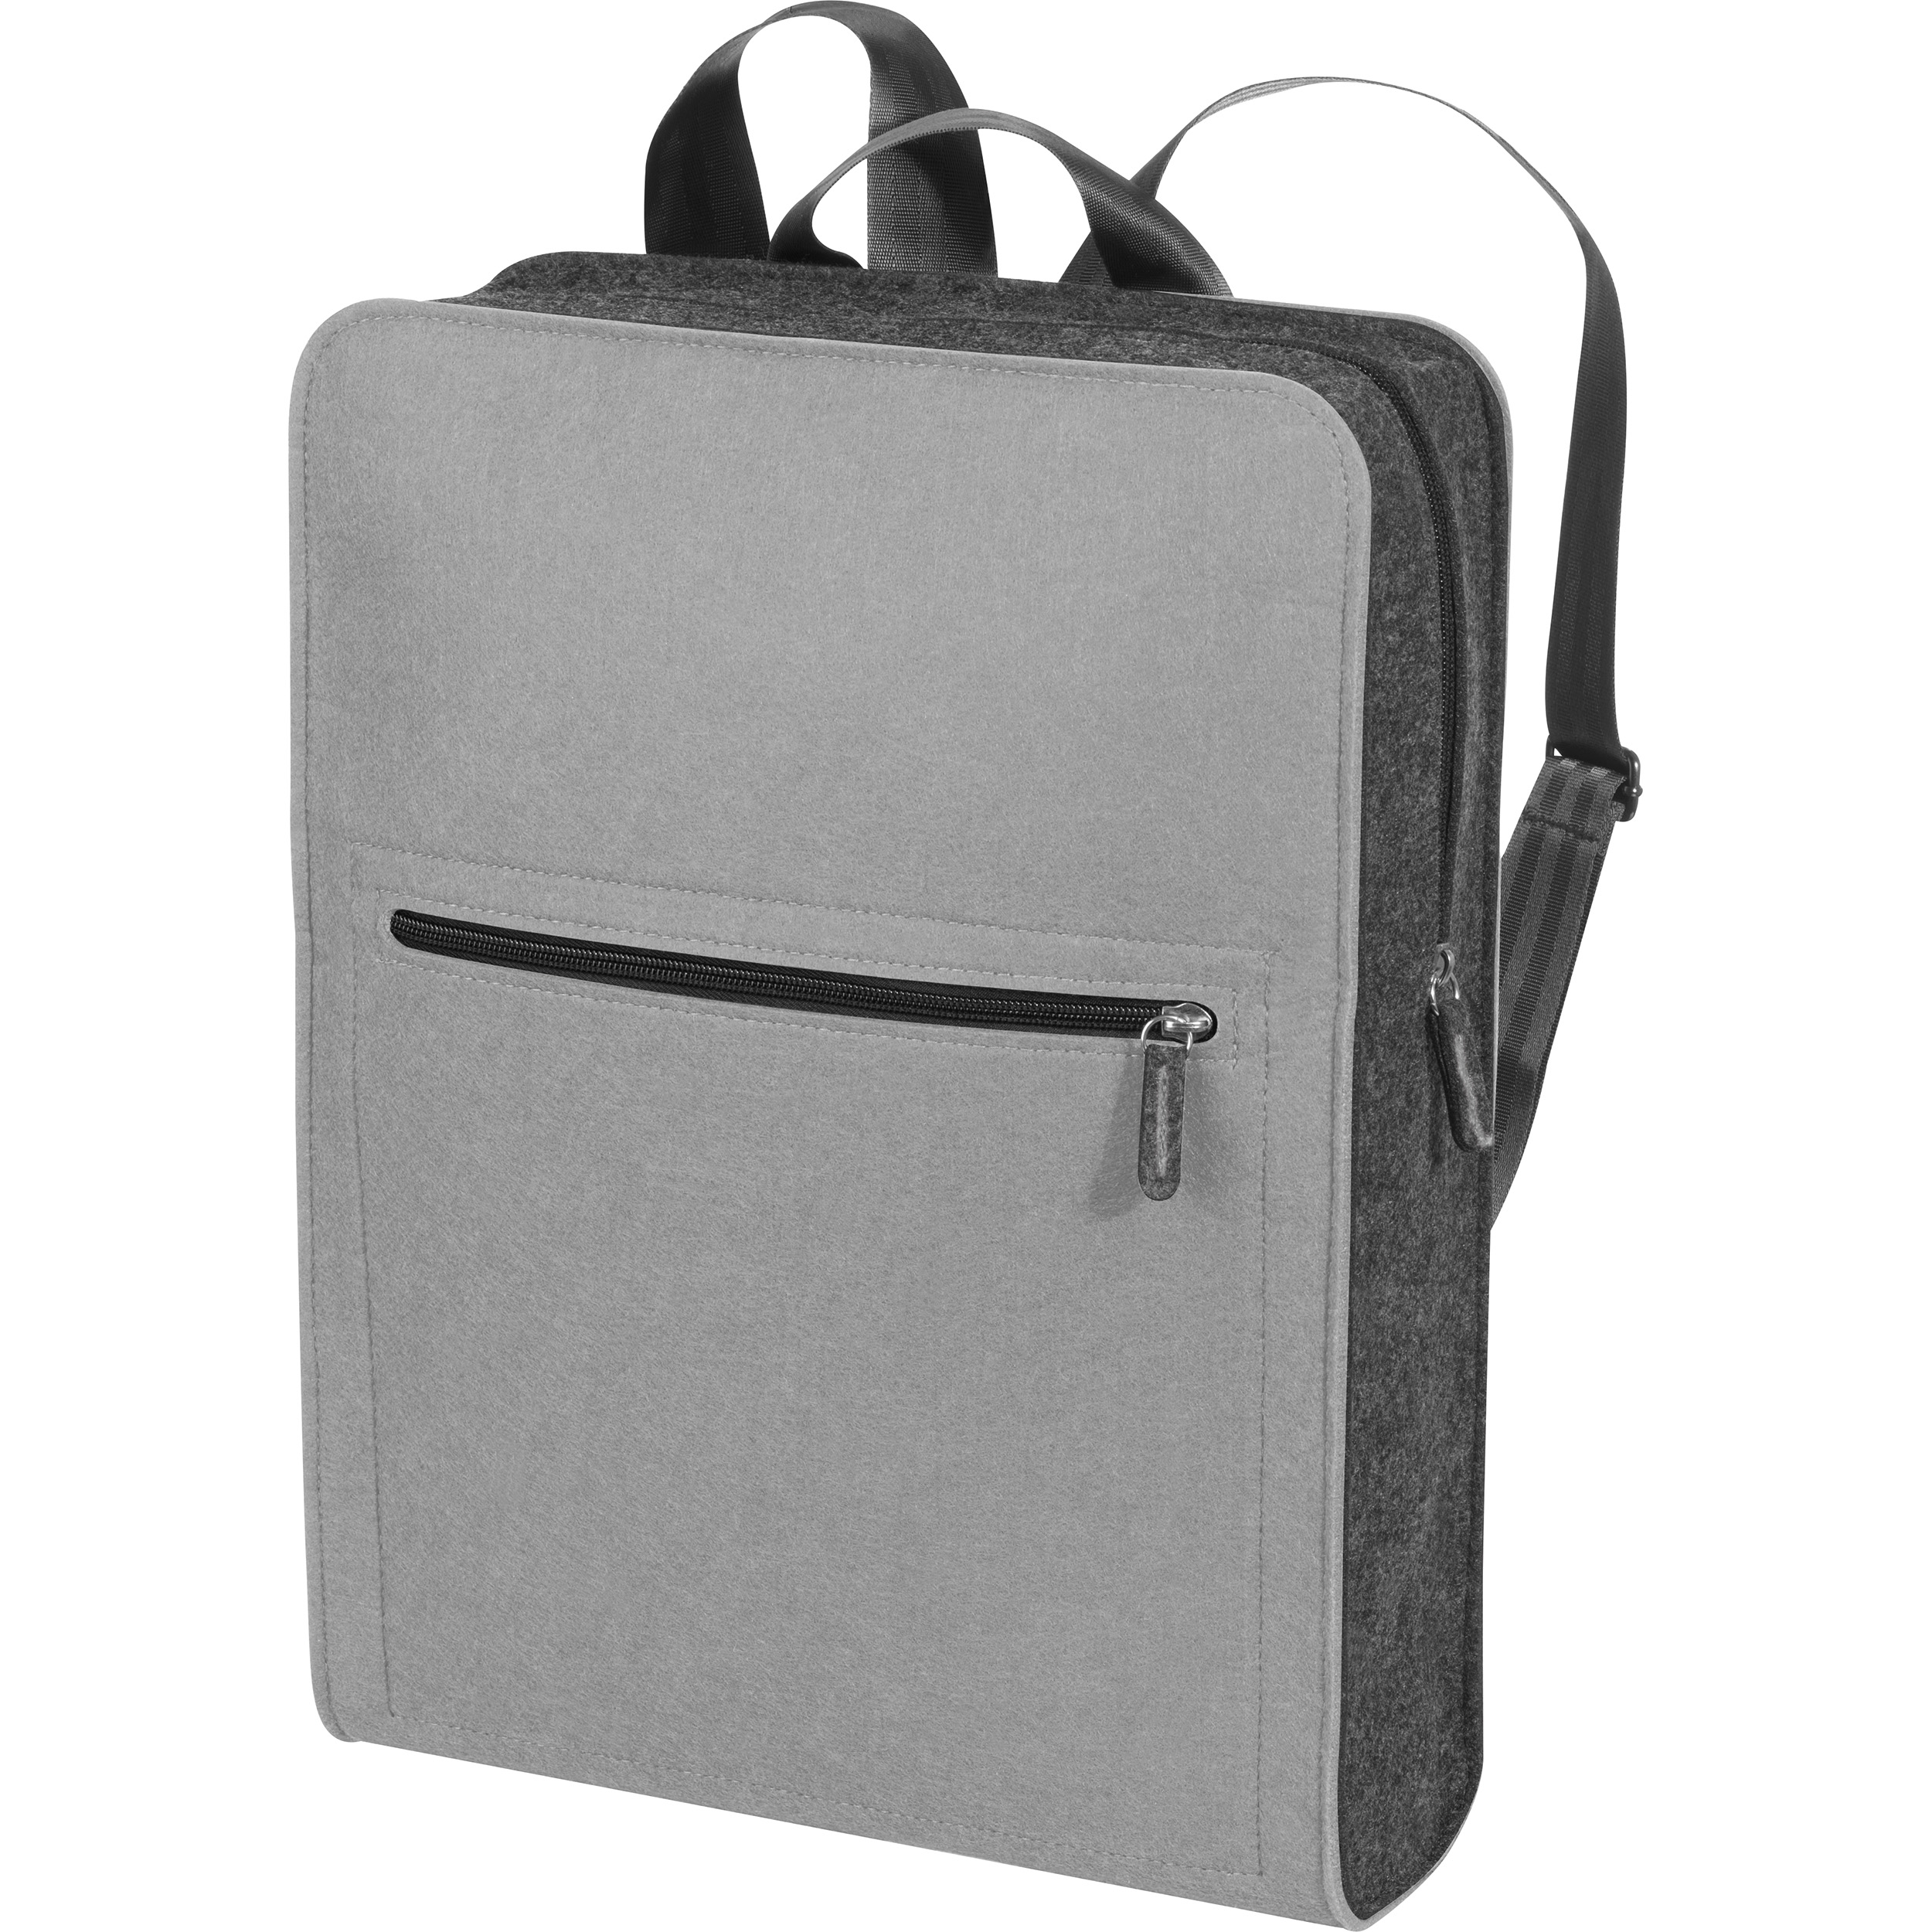 Backpack made of felt material with a colour accent